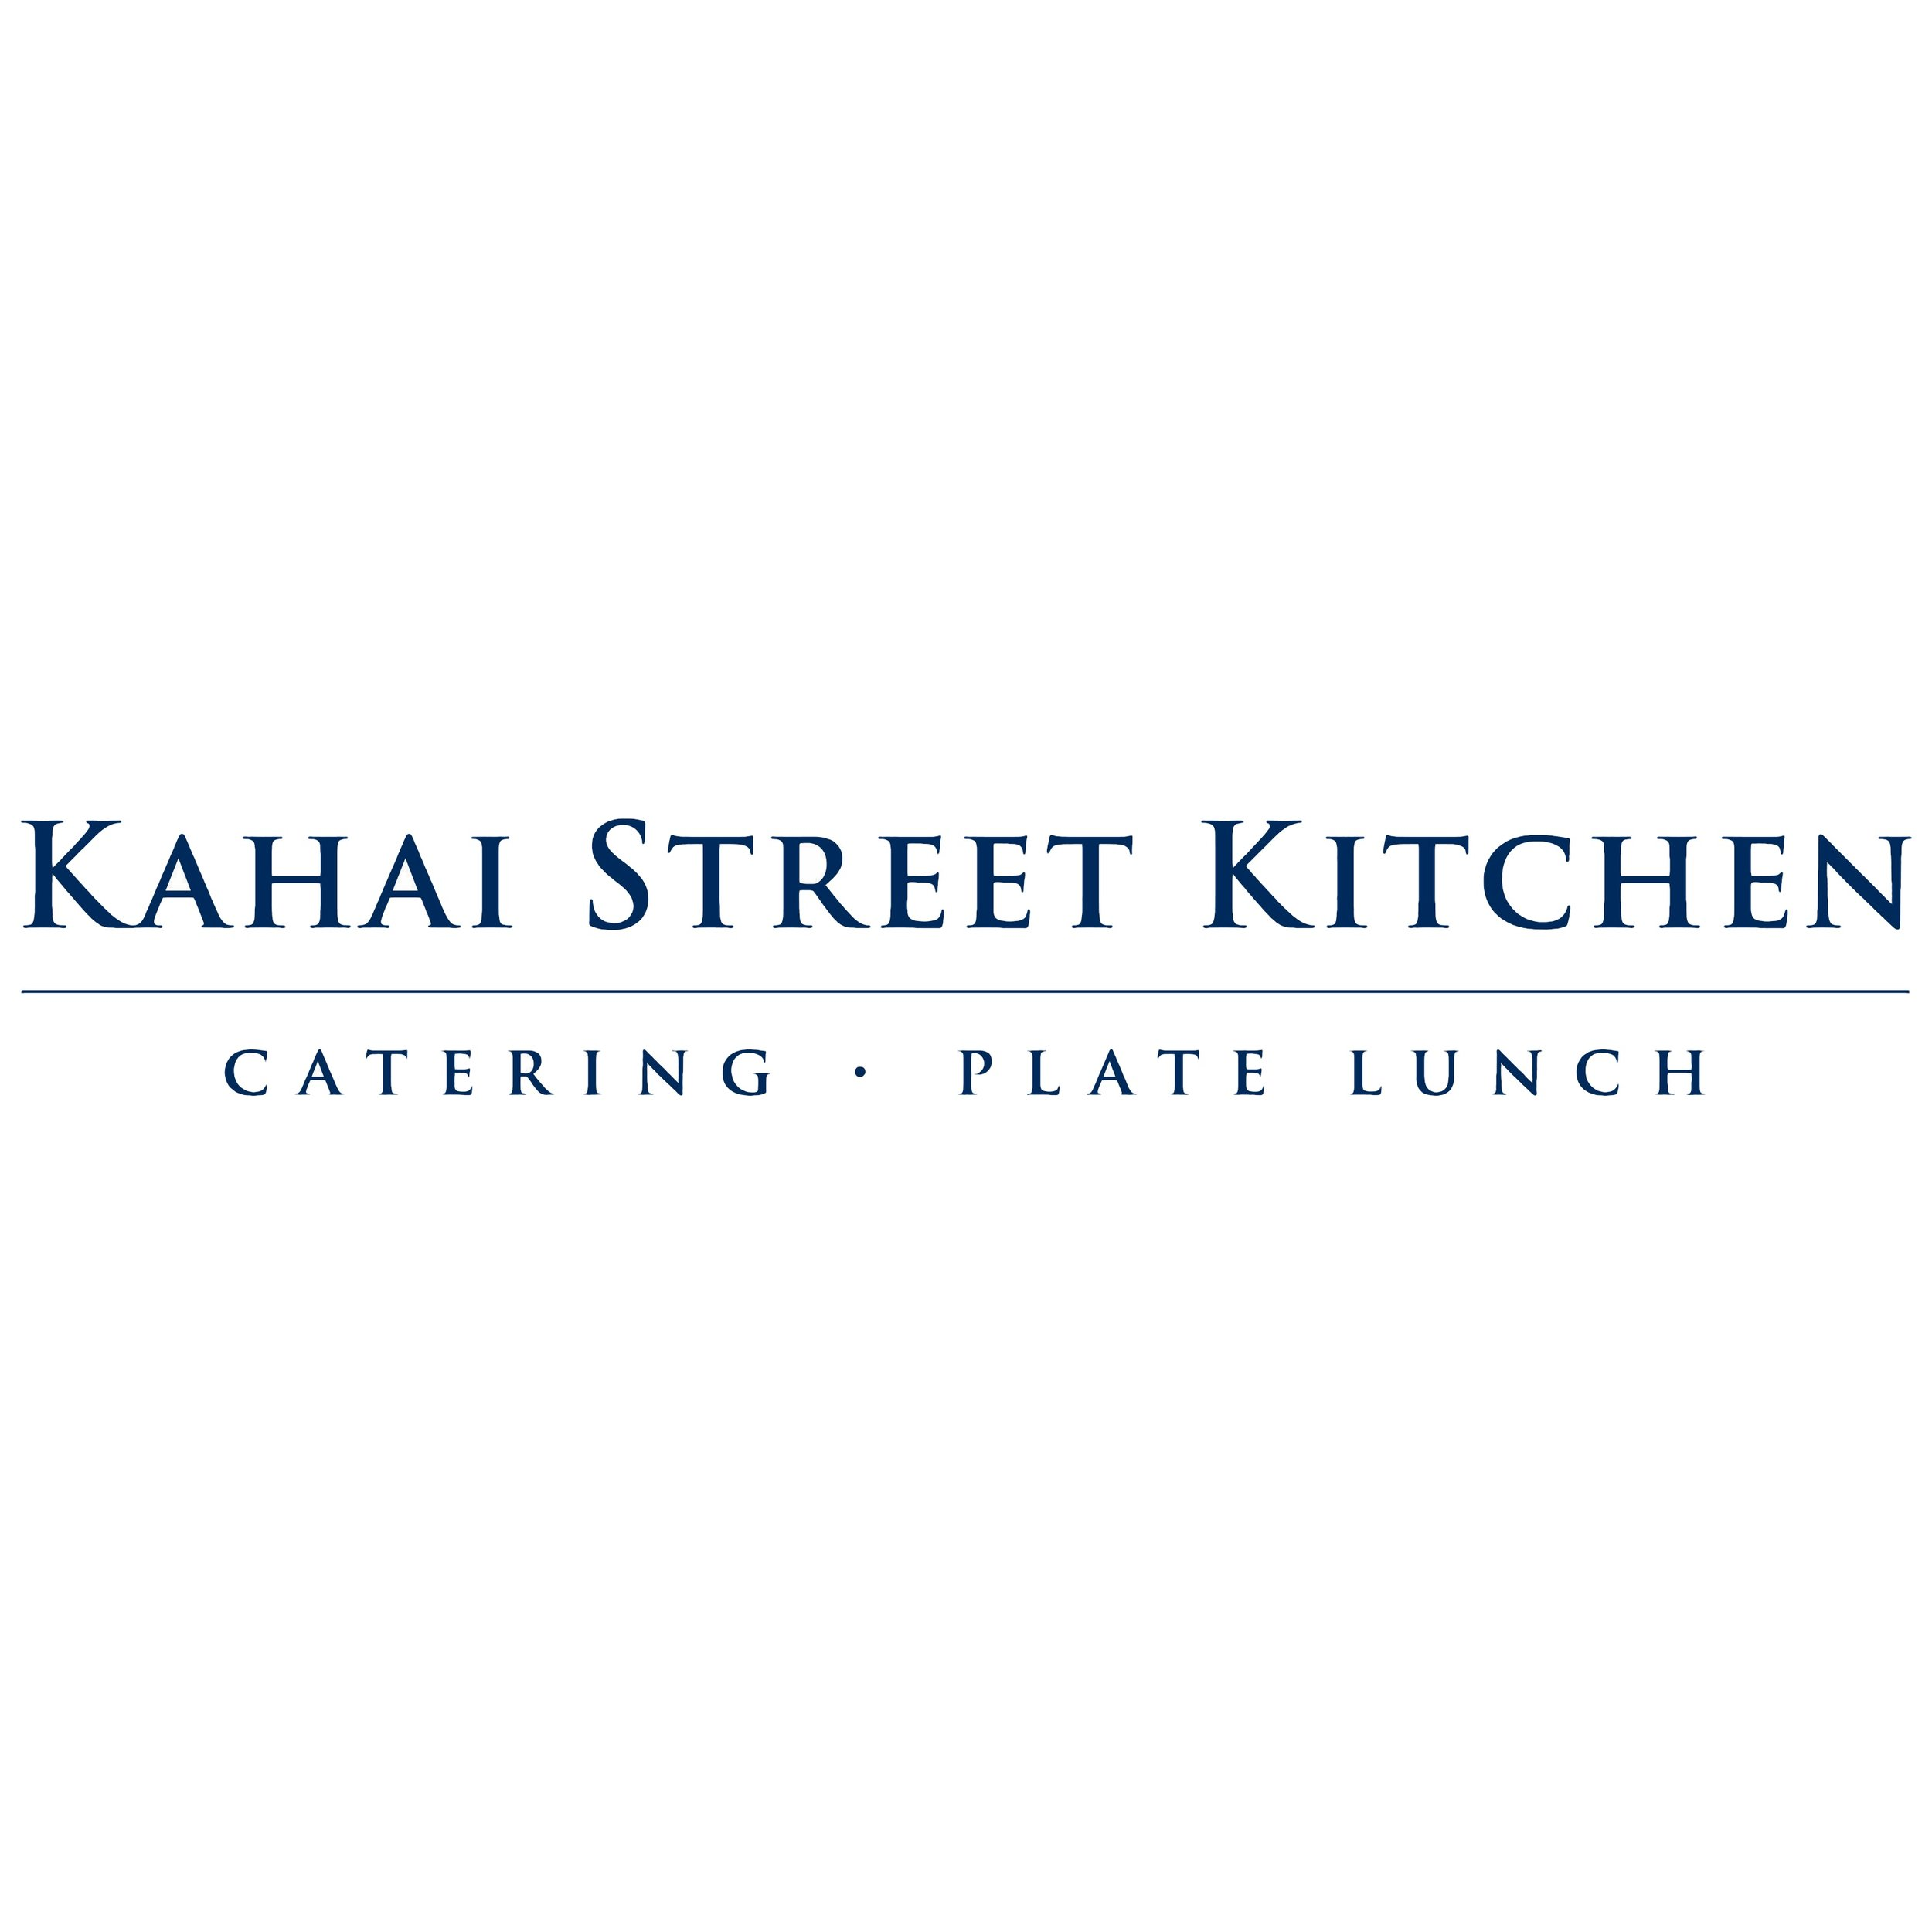 Kahai Street Kitchen